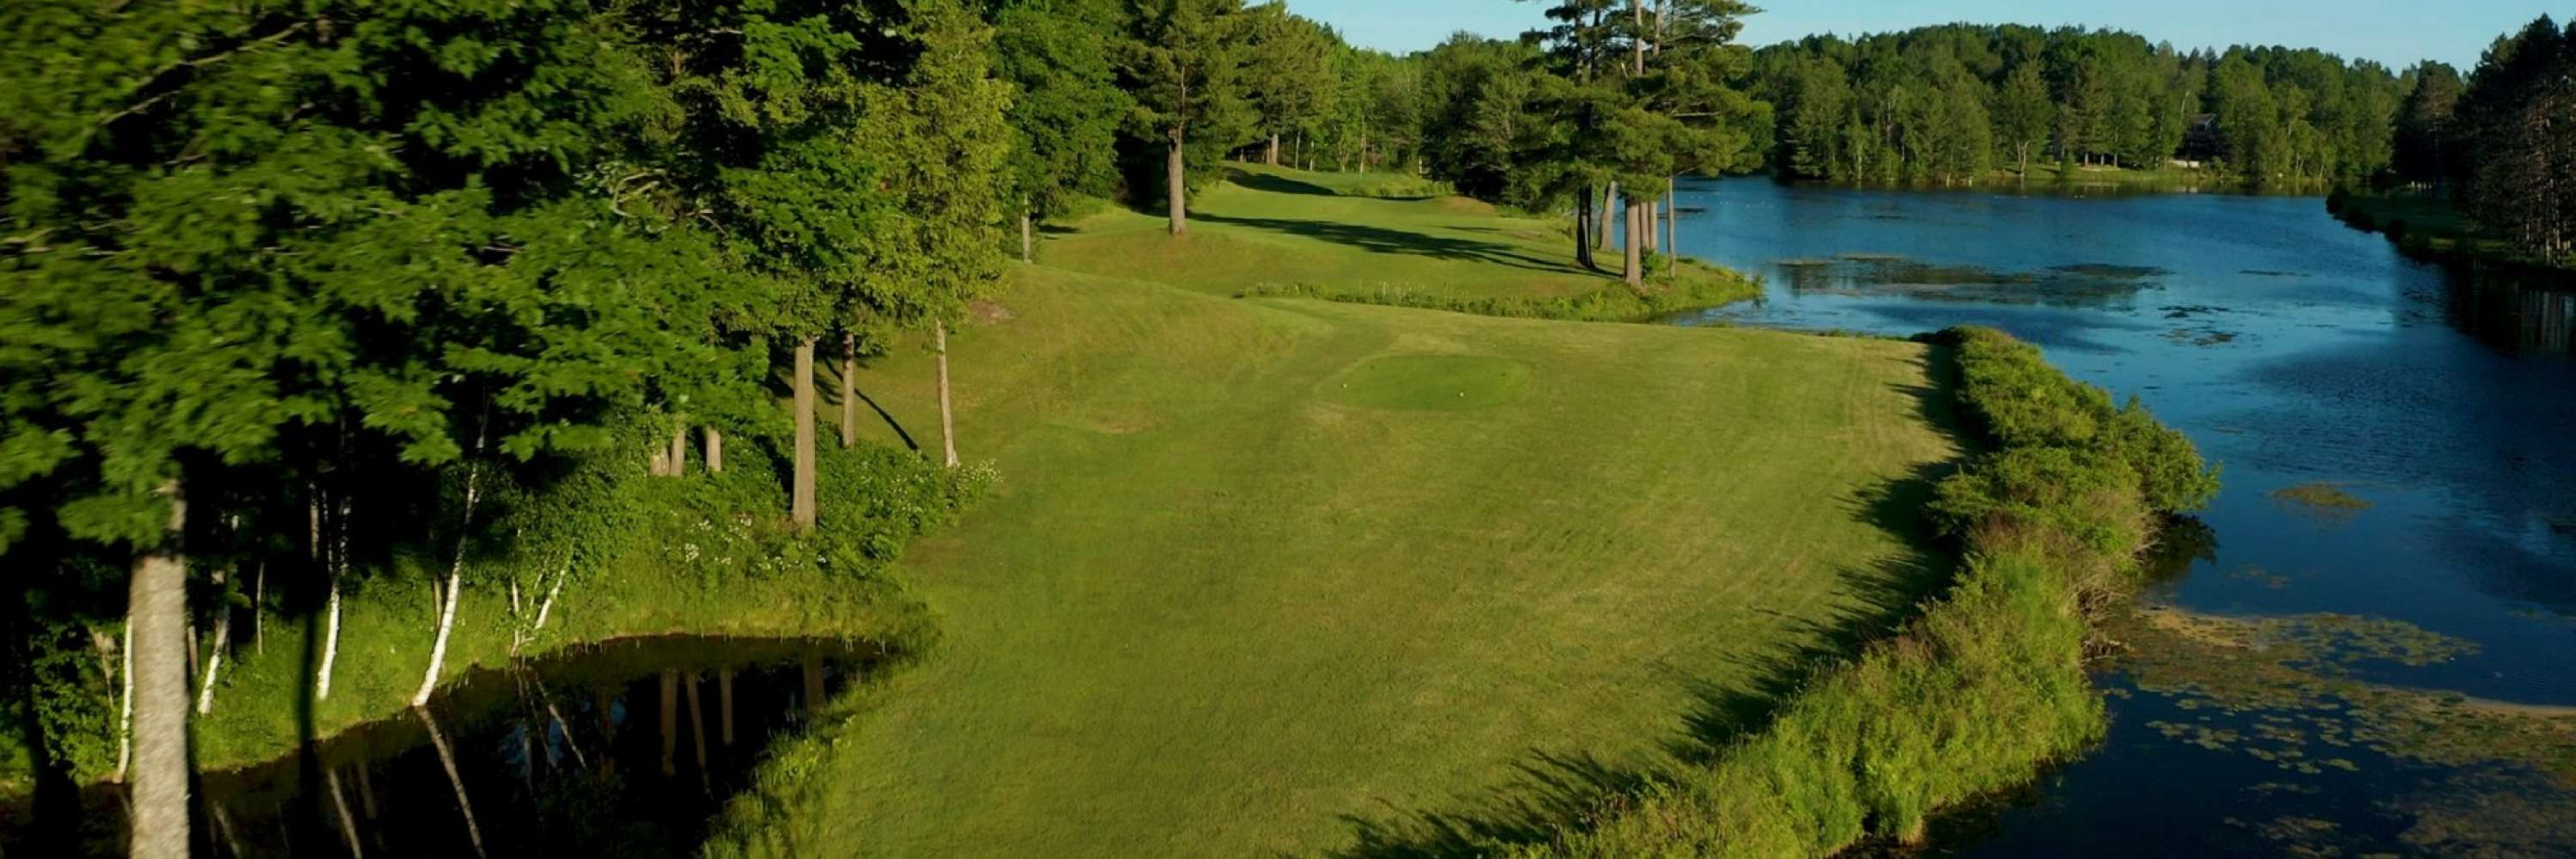 aerial view of gold course sunny day pond behind the course